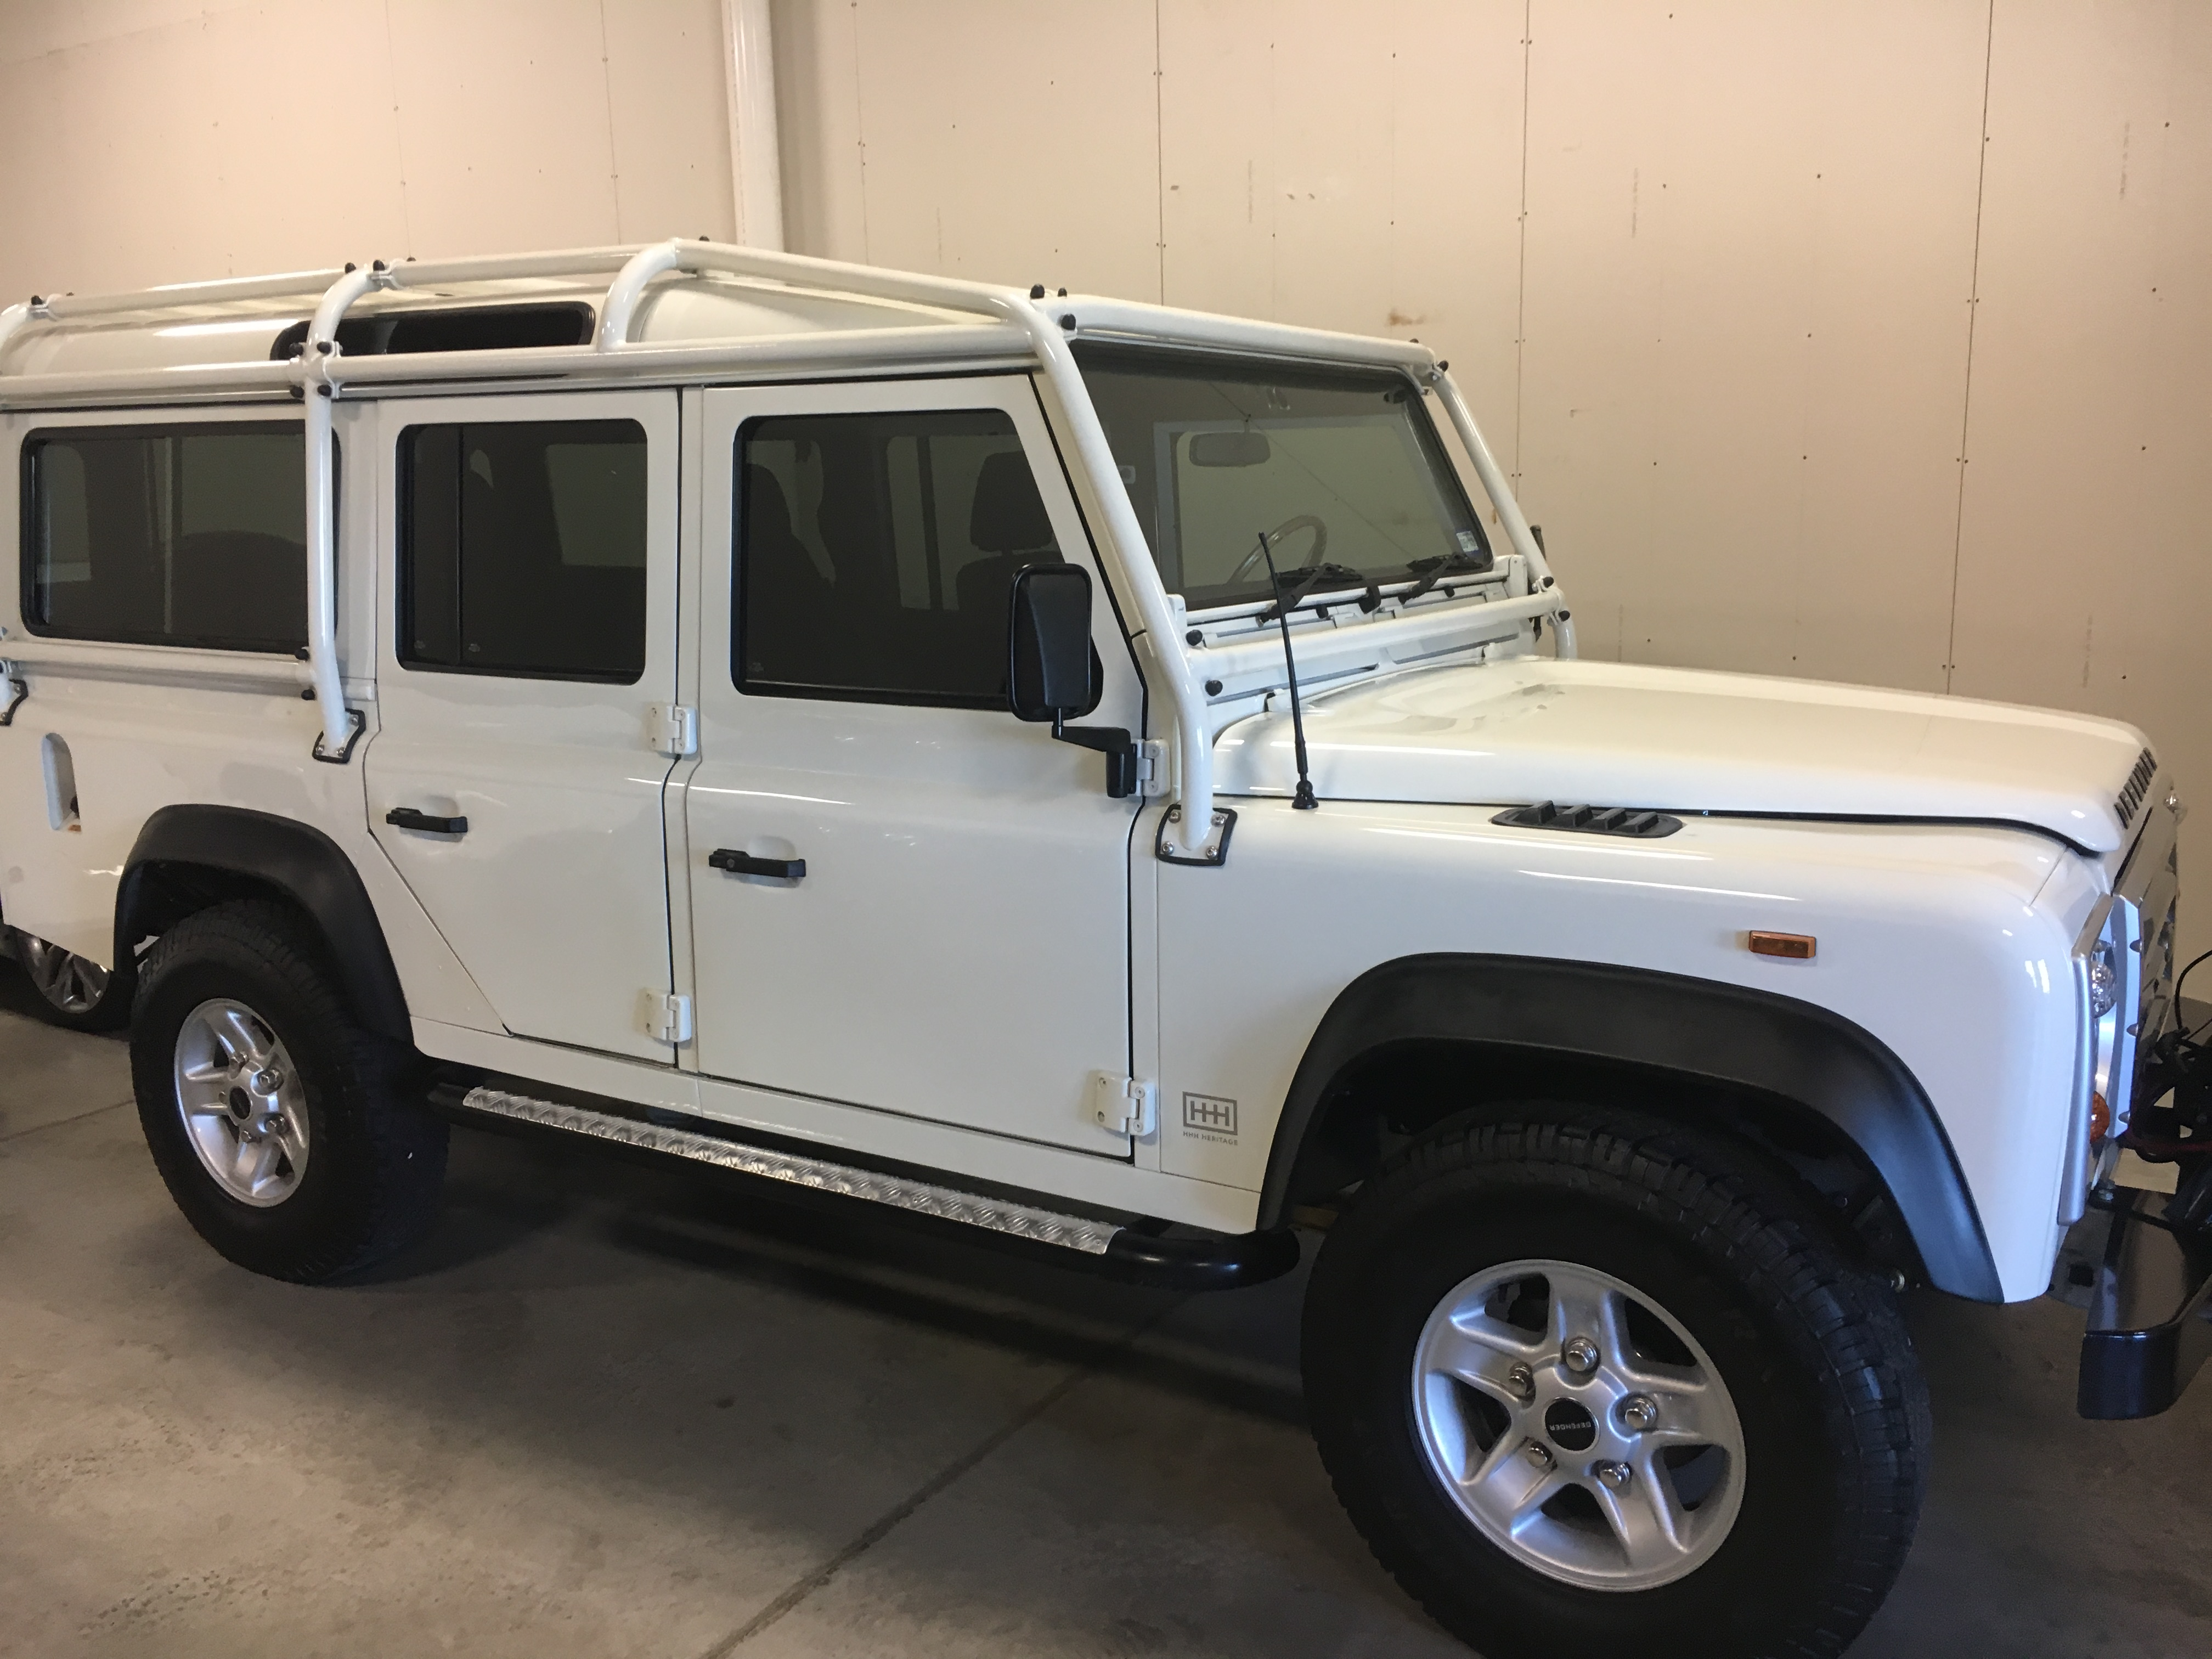 land zip alpine full top white copley waterproof upholstery out cage s landrover motorcars soft tires safari rover with defender seat n grey